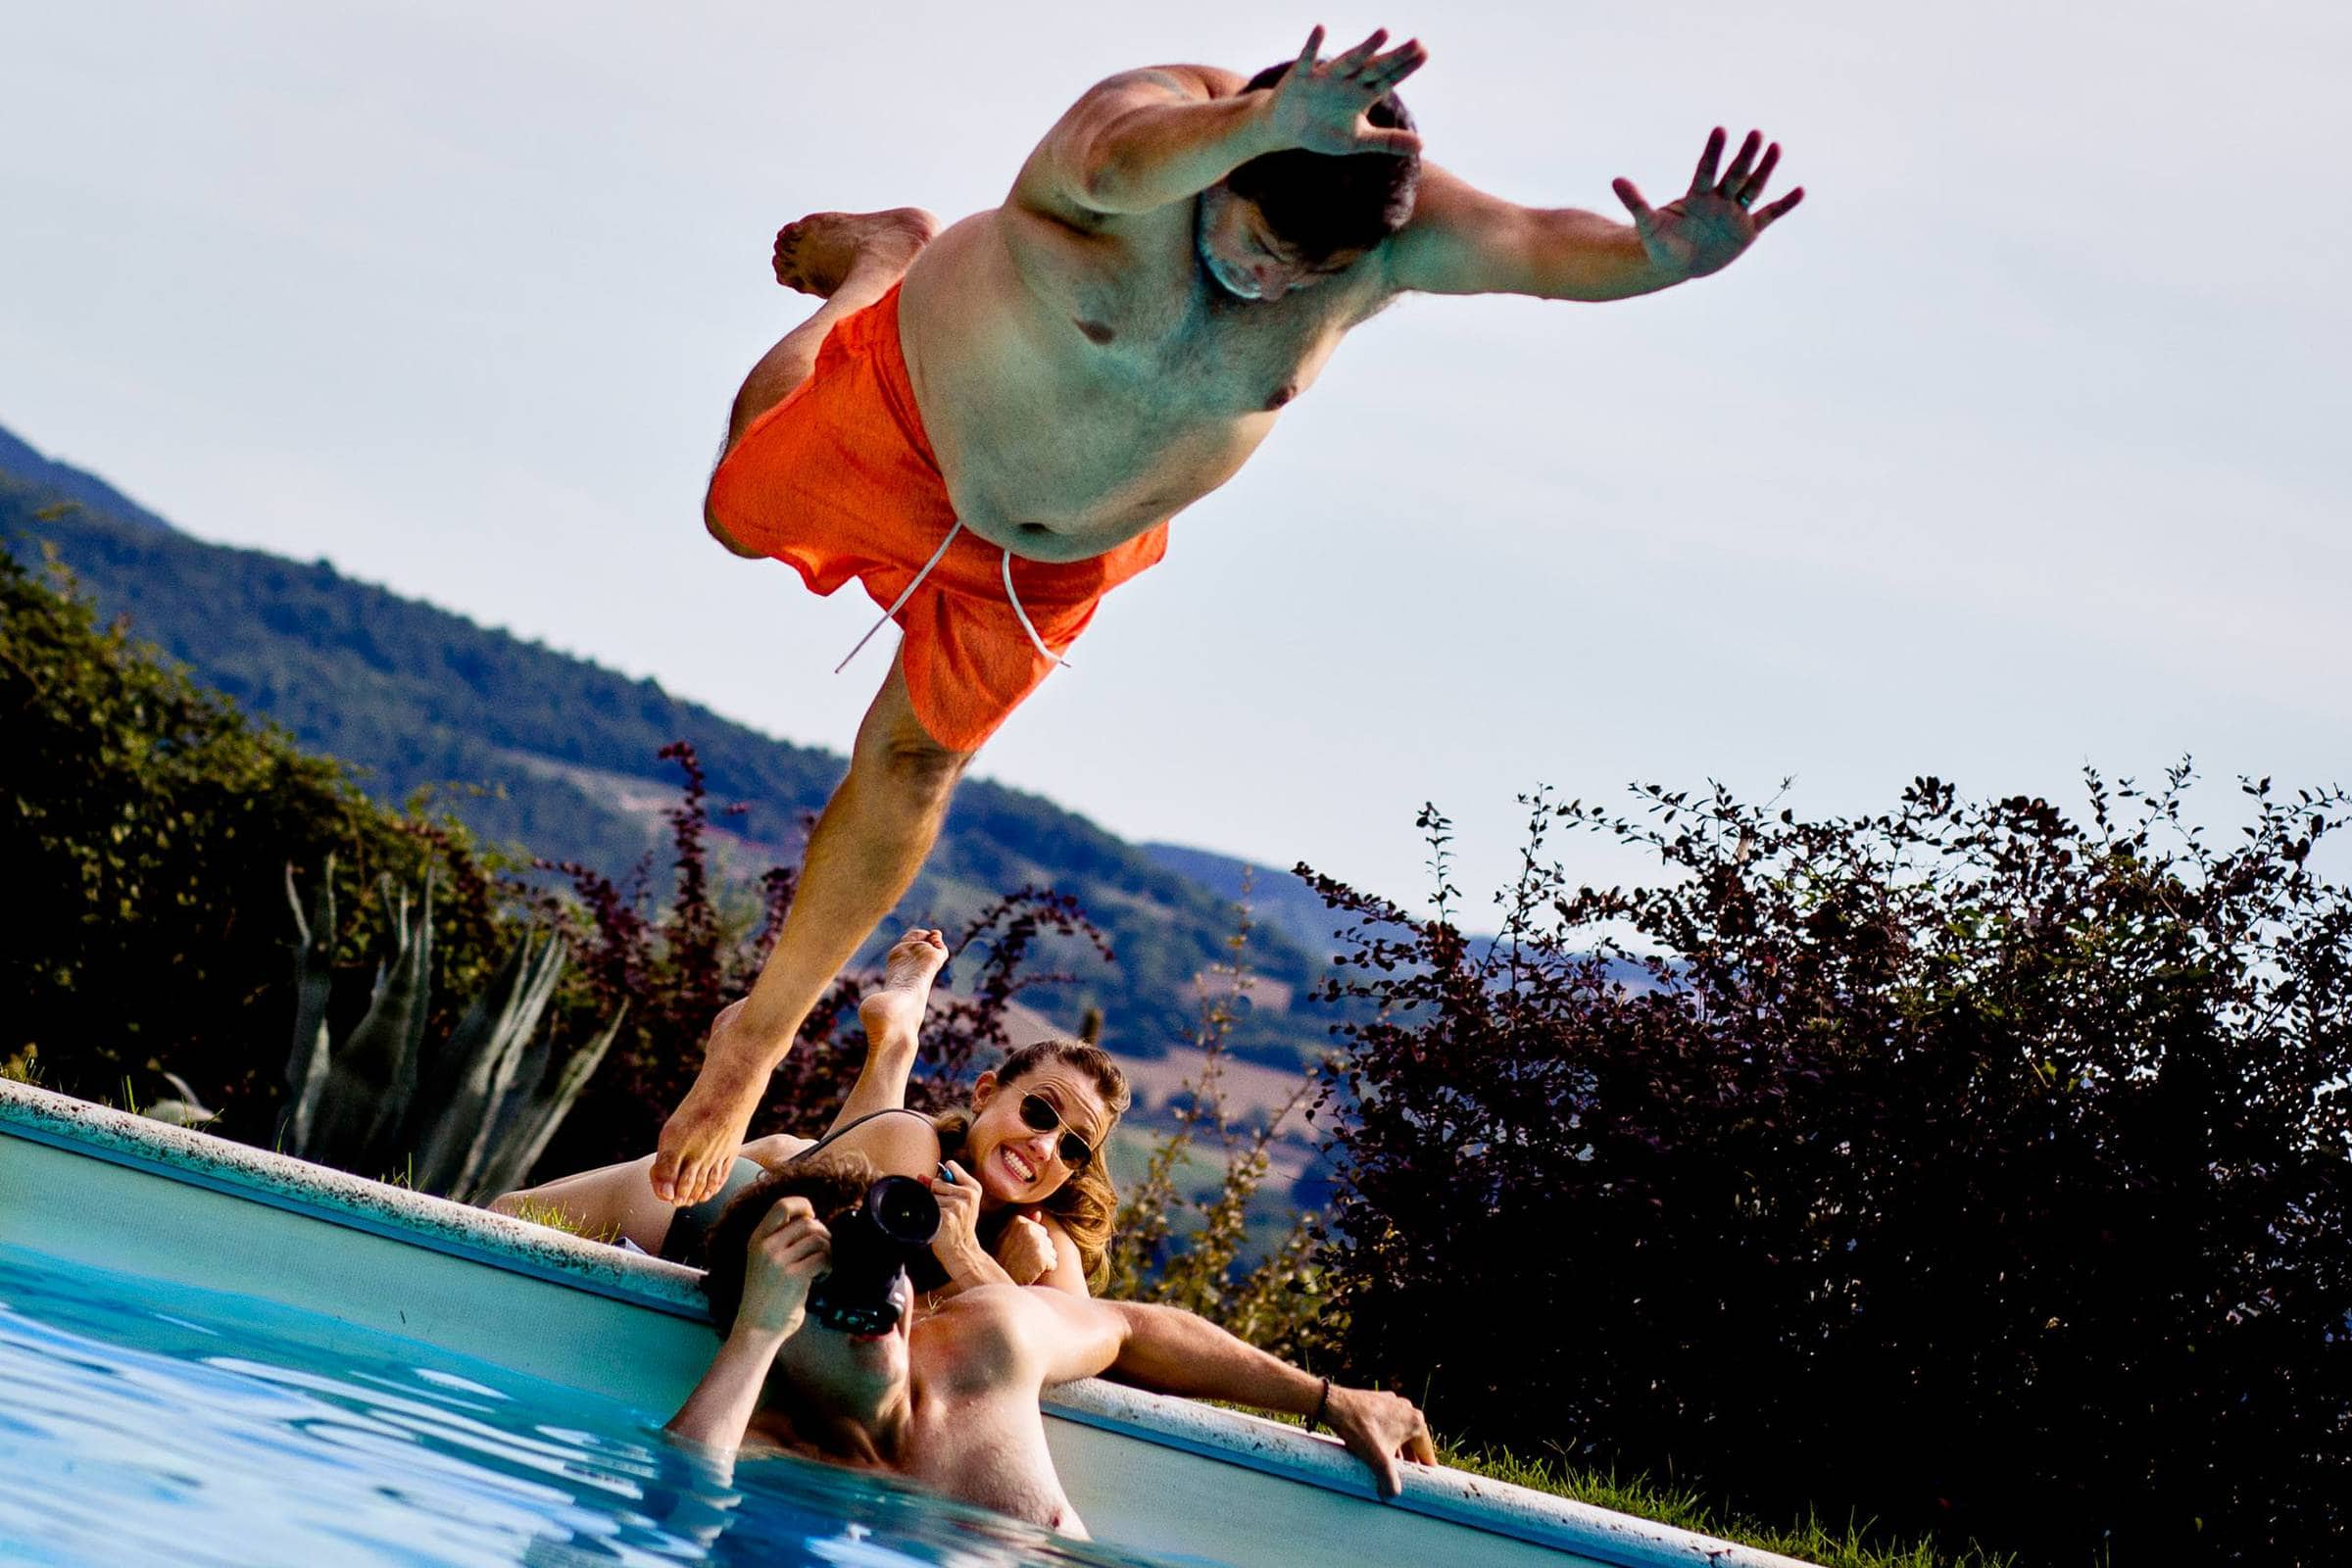 Guest diving into a pool party during a Villa Tre Grazie wedding celebration near Todi, Italy.